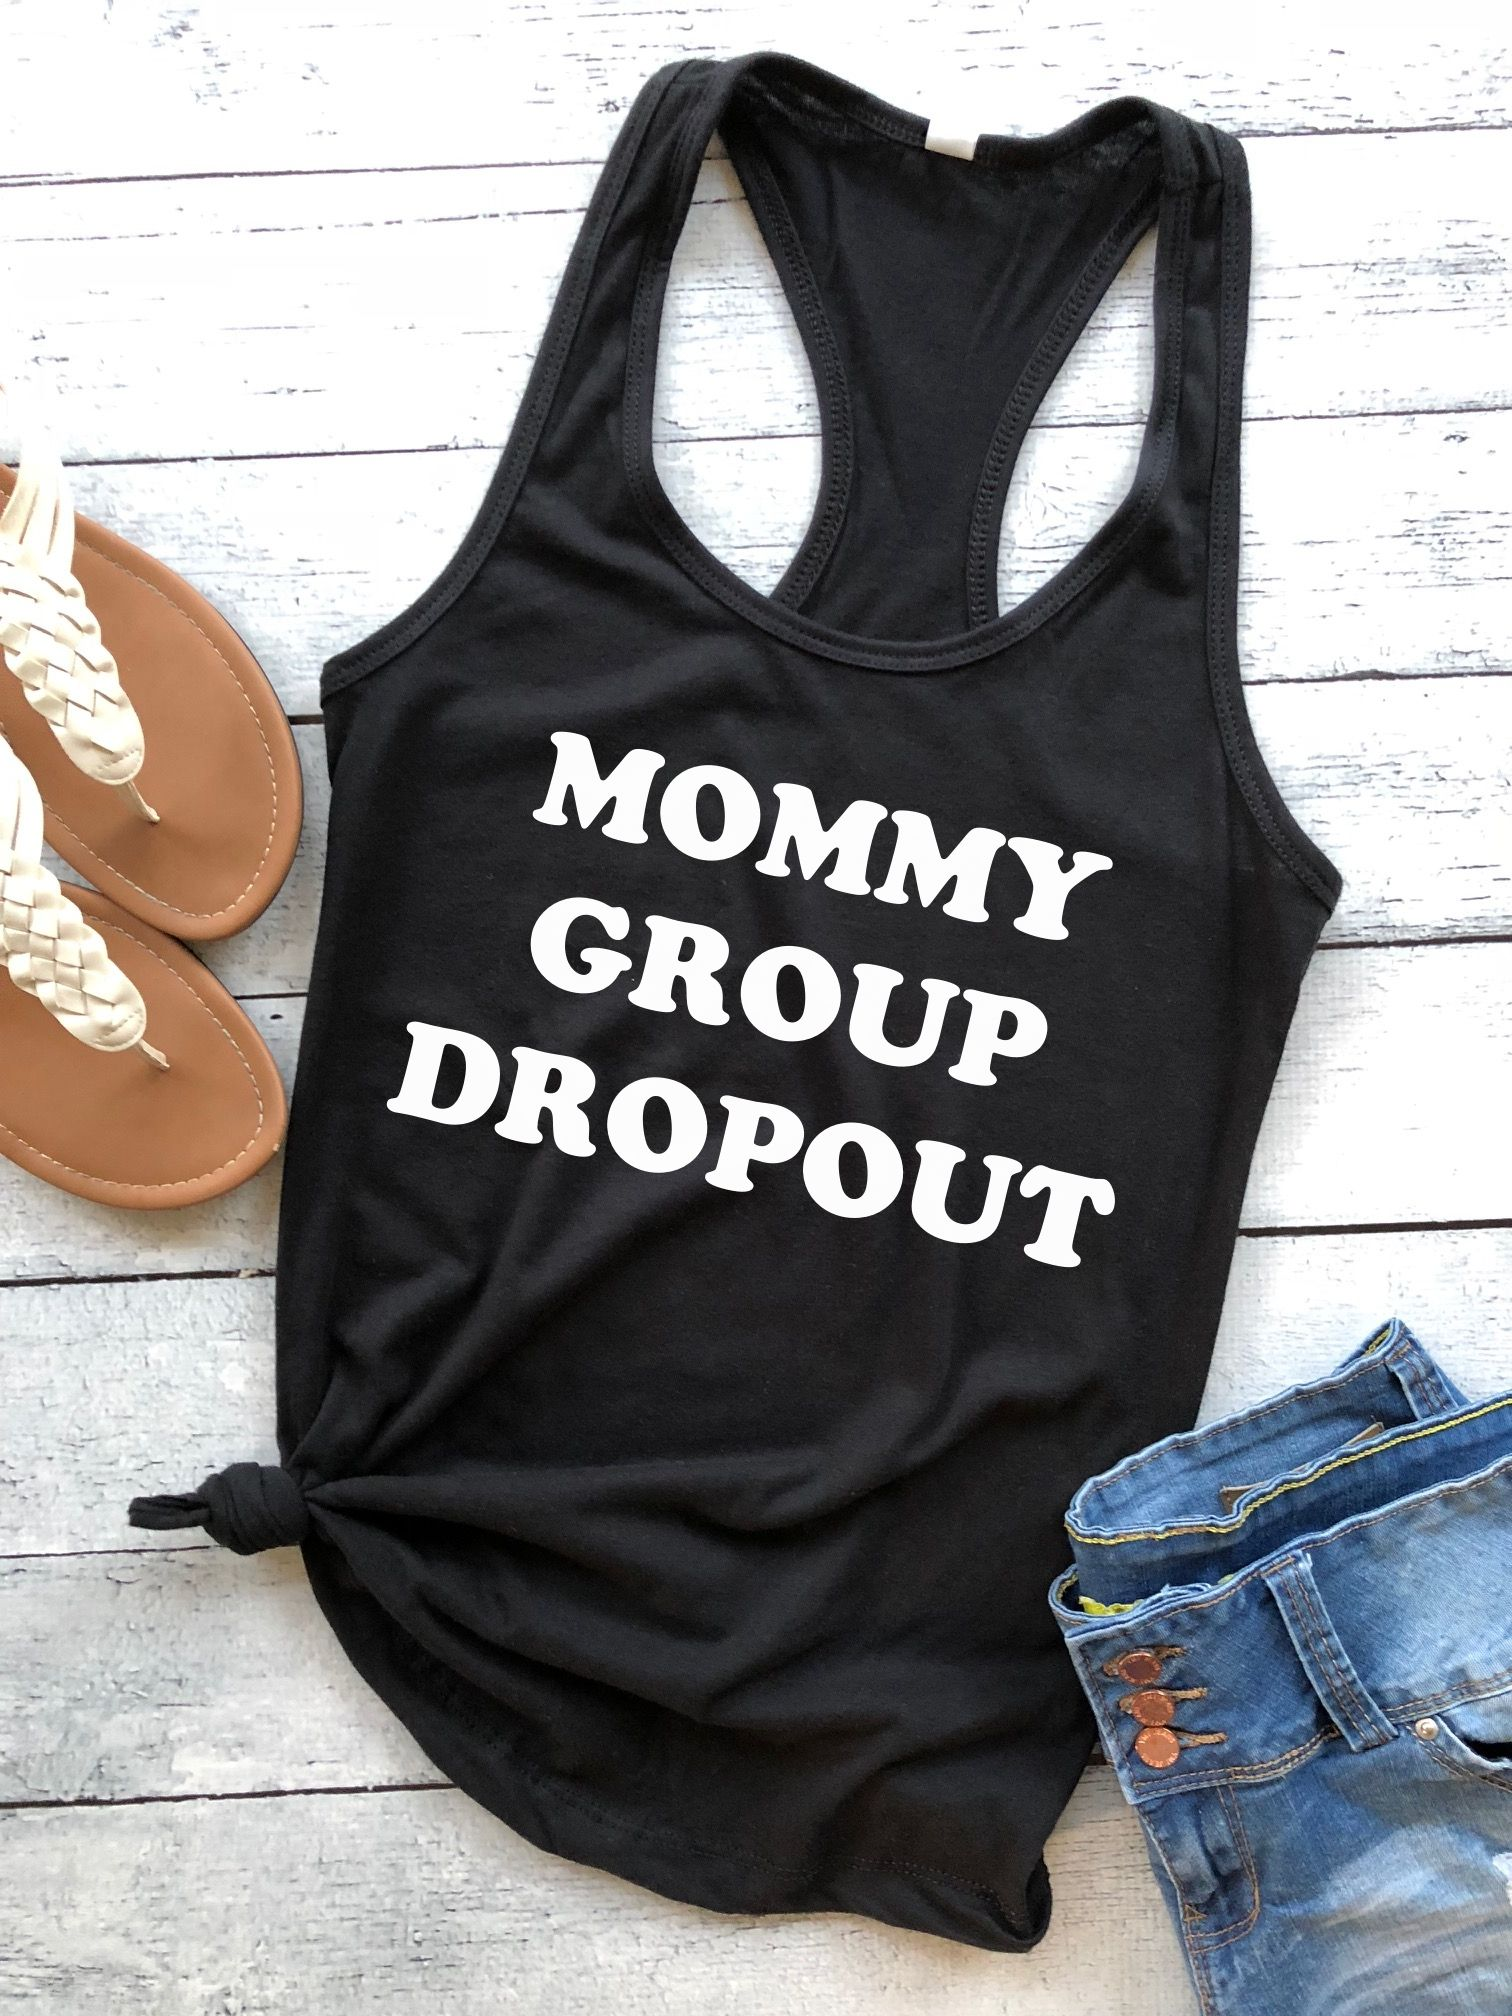 1b6026fdf06f8 Mommy Group Dropout